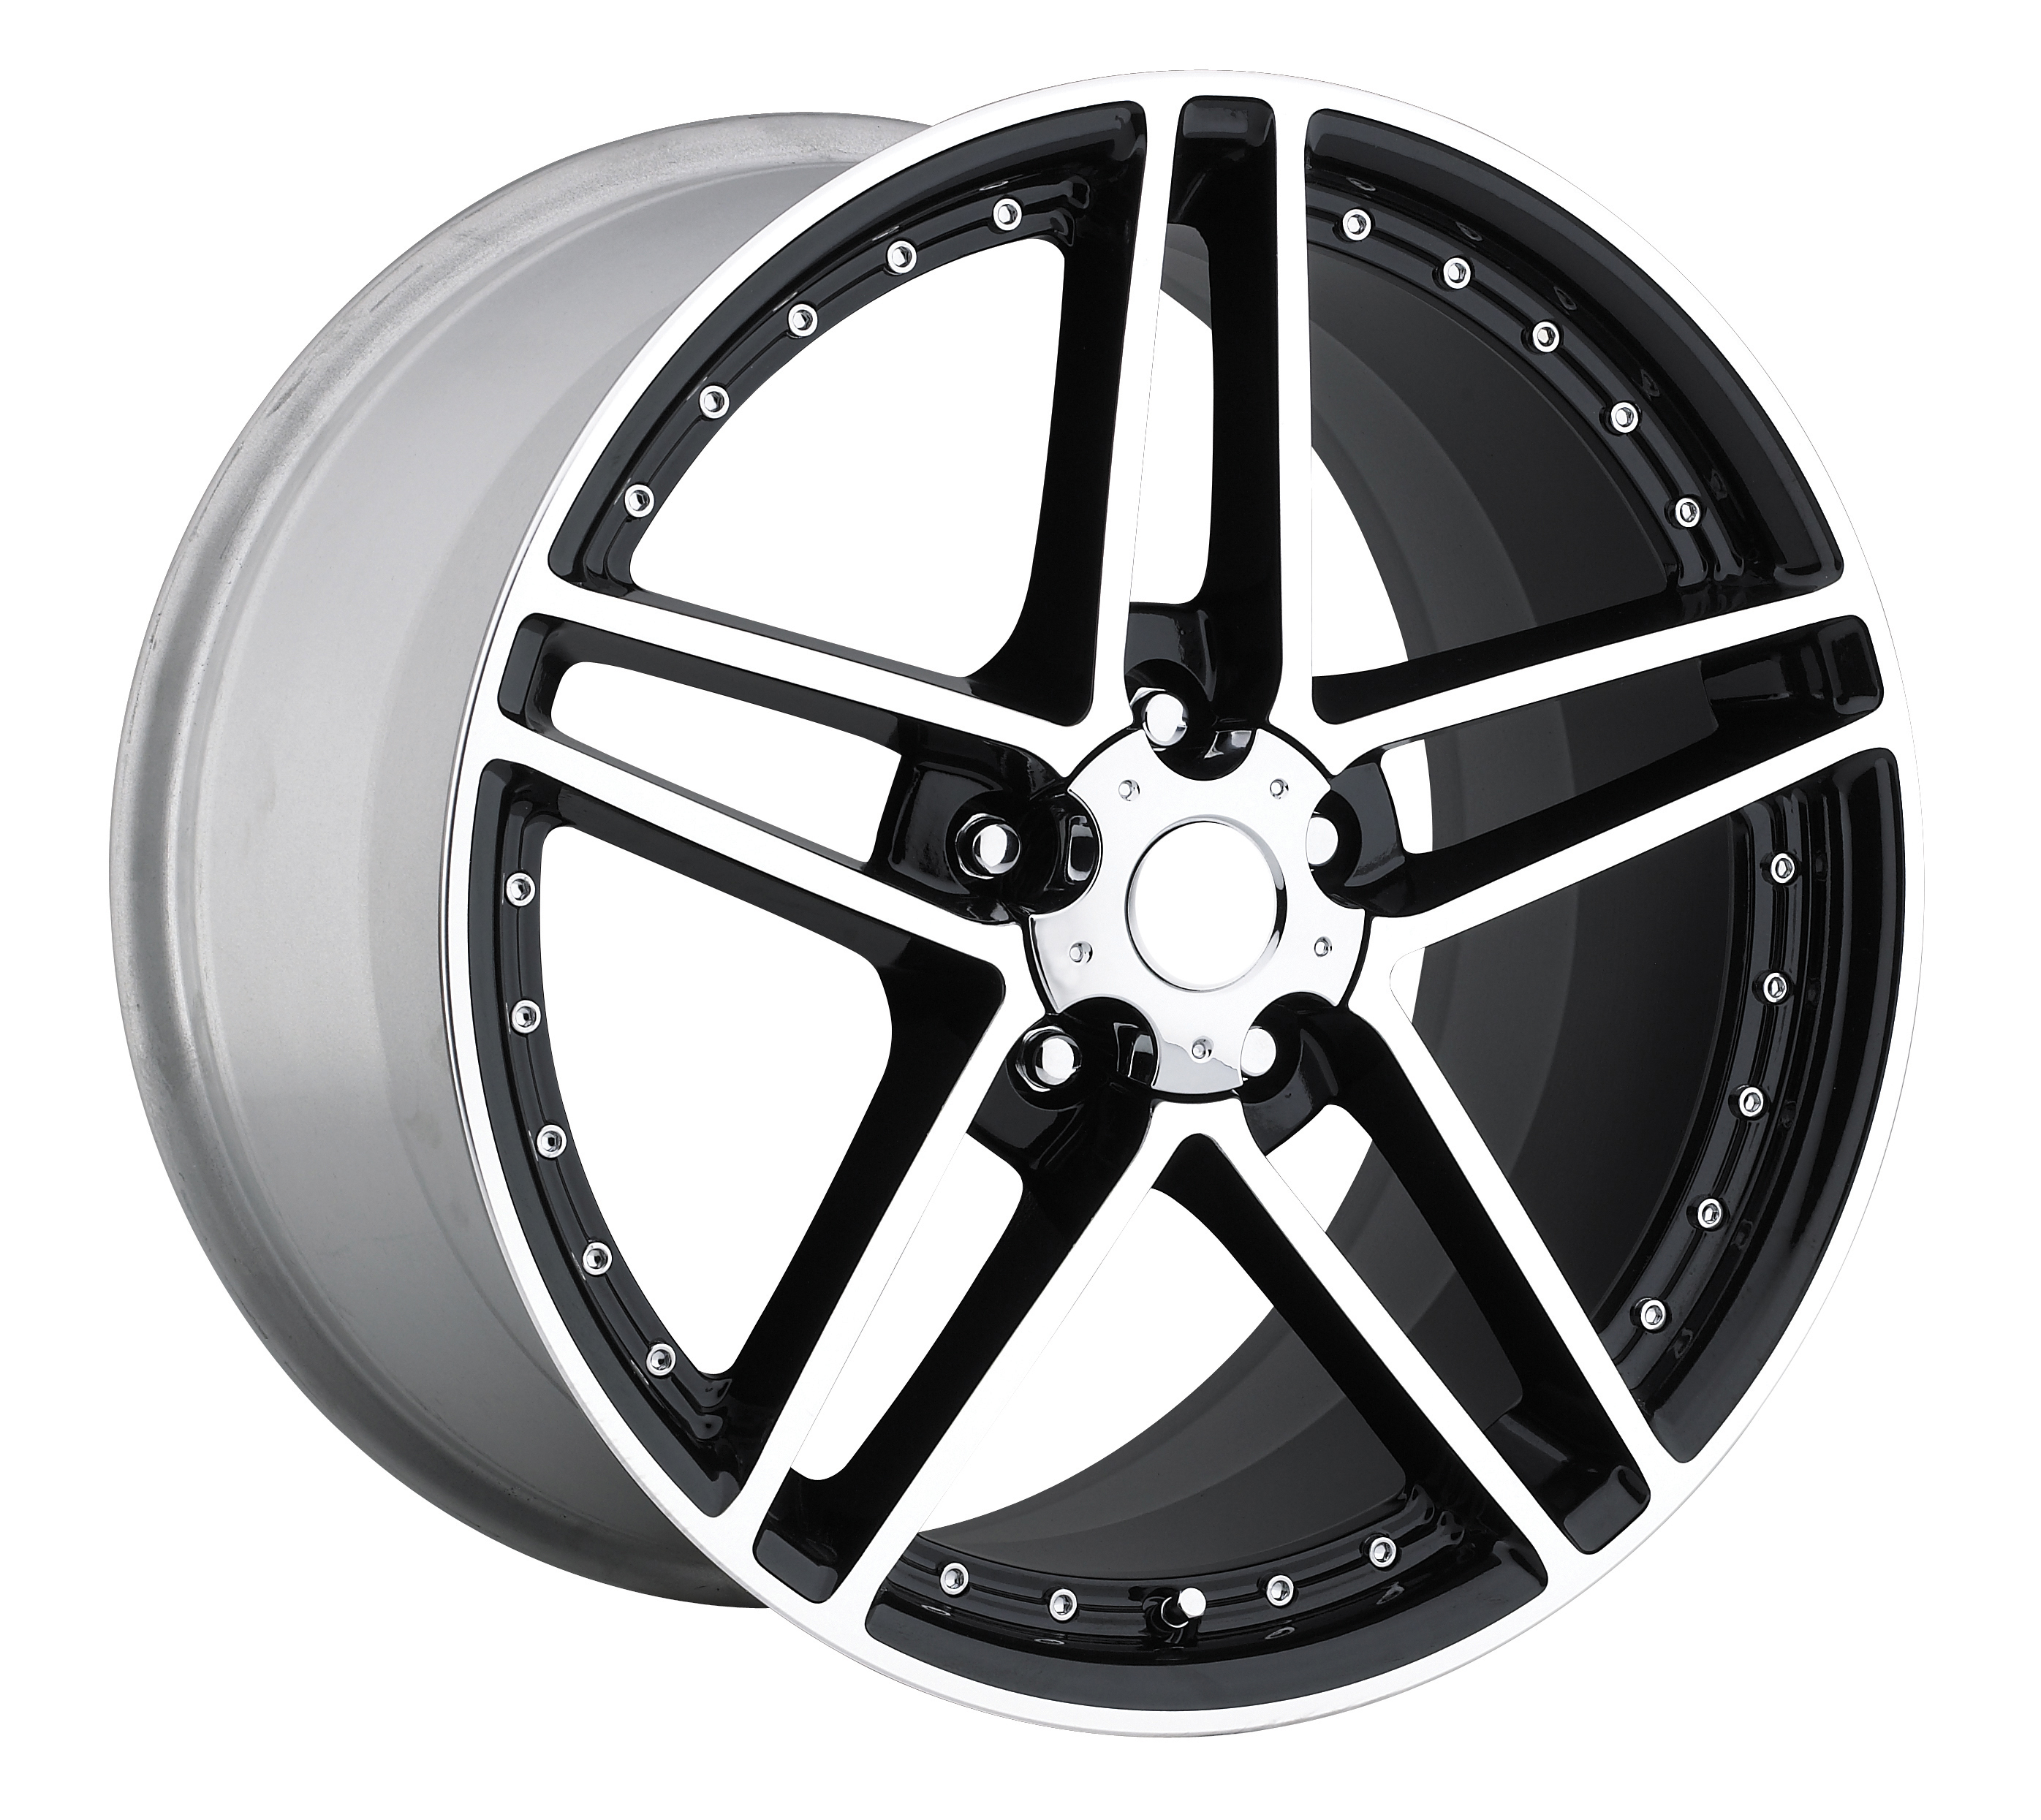 Chevrolet Corvette 1997-2012 19x10 5x4.75 +79 - C6 Z06 Motorsport Wheel -  Black Machine Face With Cap